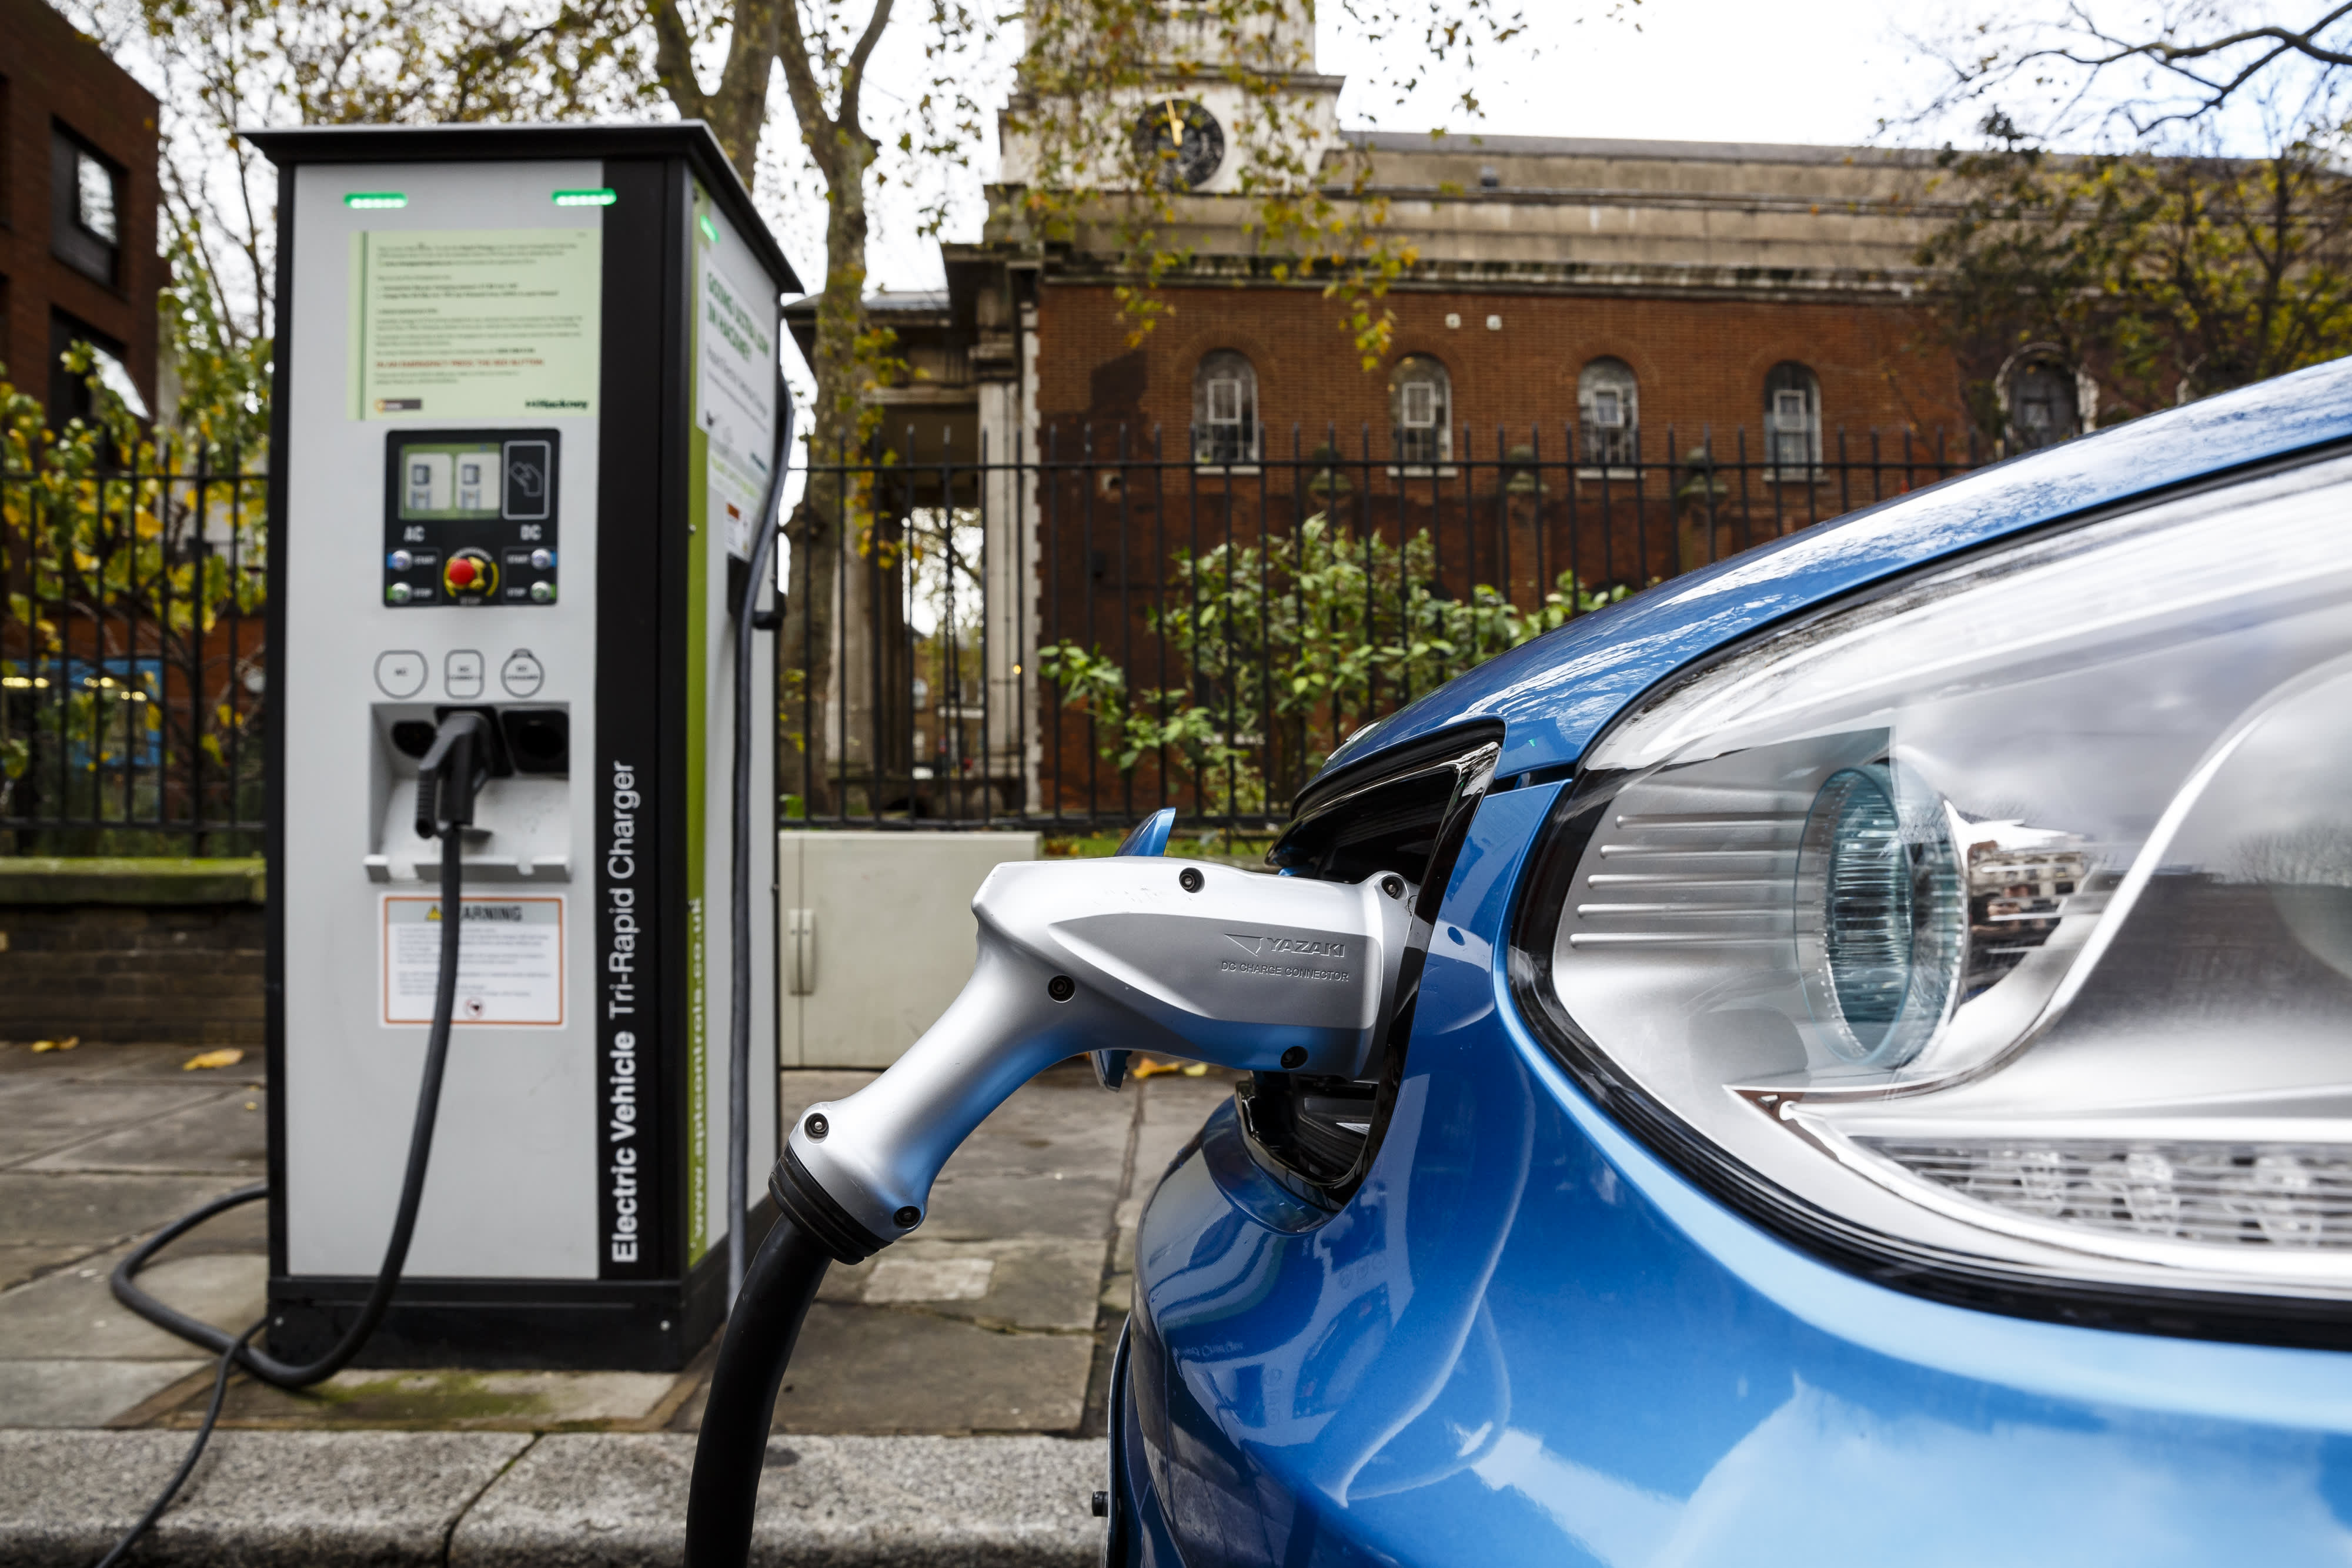 Investing: David Roche on how to invest in the electric vehicle market